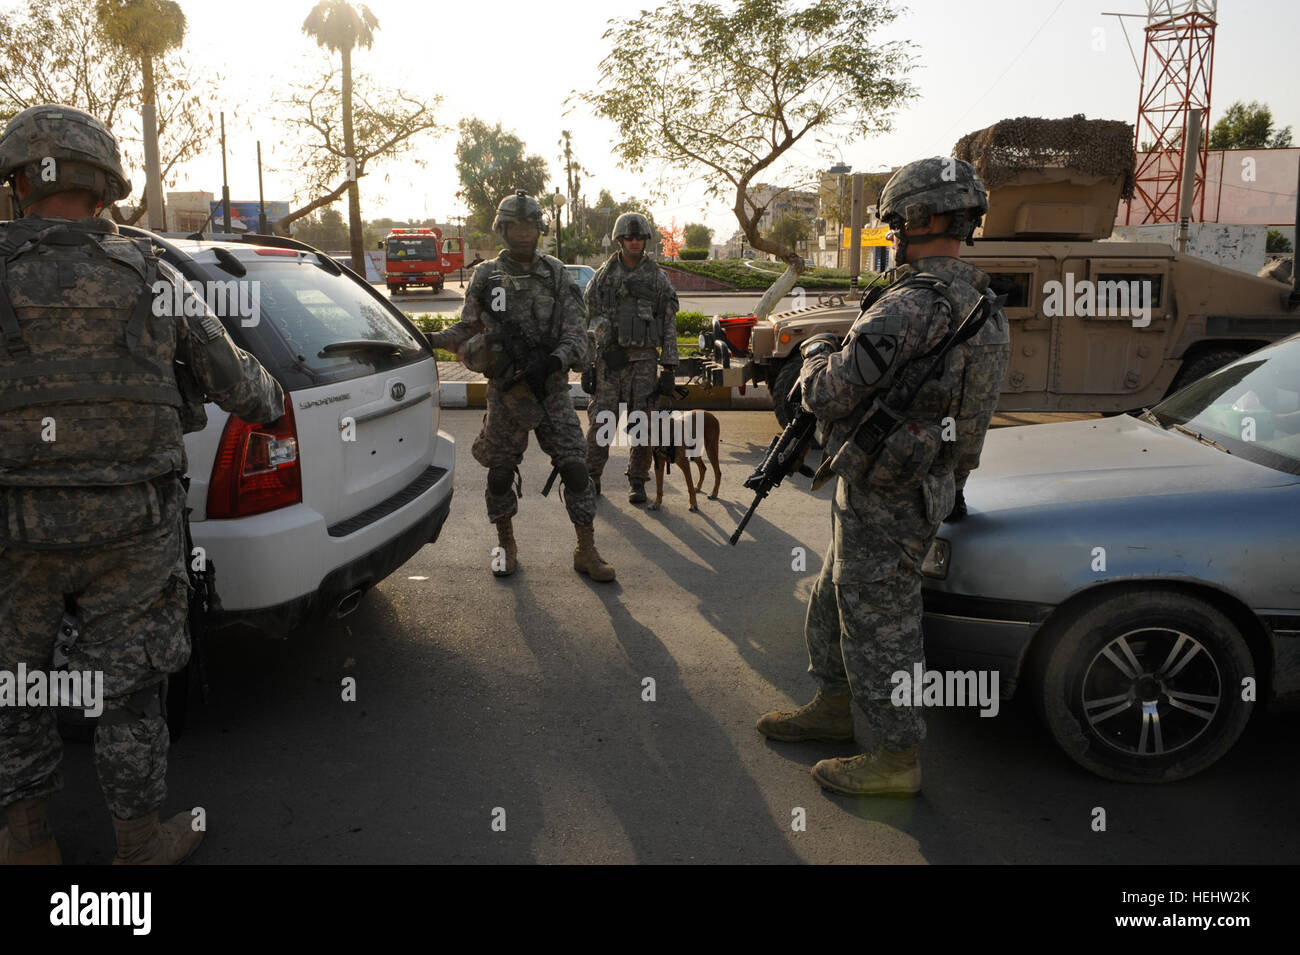 U.S. Soldiers from 1st Battalion, 5th Cavalry Regiment, 1st Cavalry ...